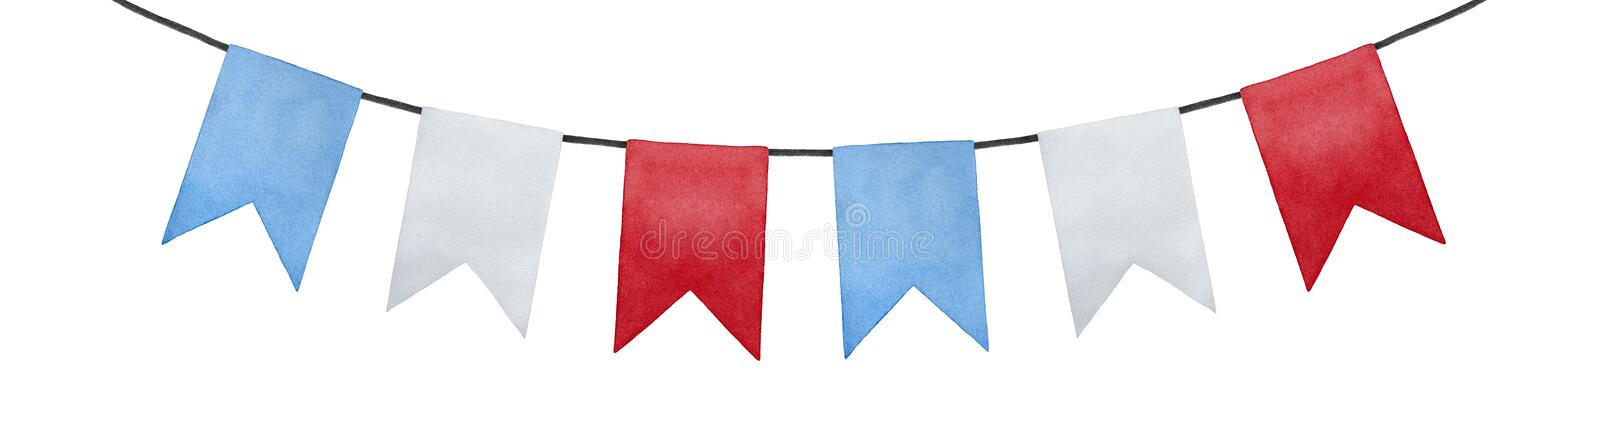 Joyful and positive pennant bunting banner flags illustration. Rectangular shape; sky blue, pure white, bright red colors. Handmade watercolour painting, cut vector illustration